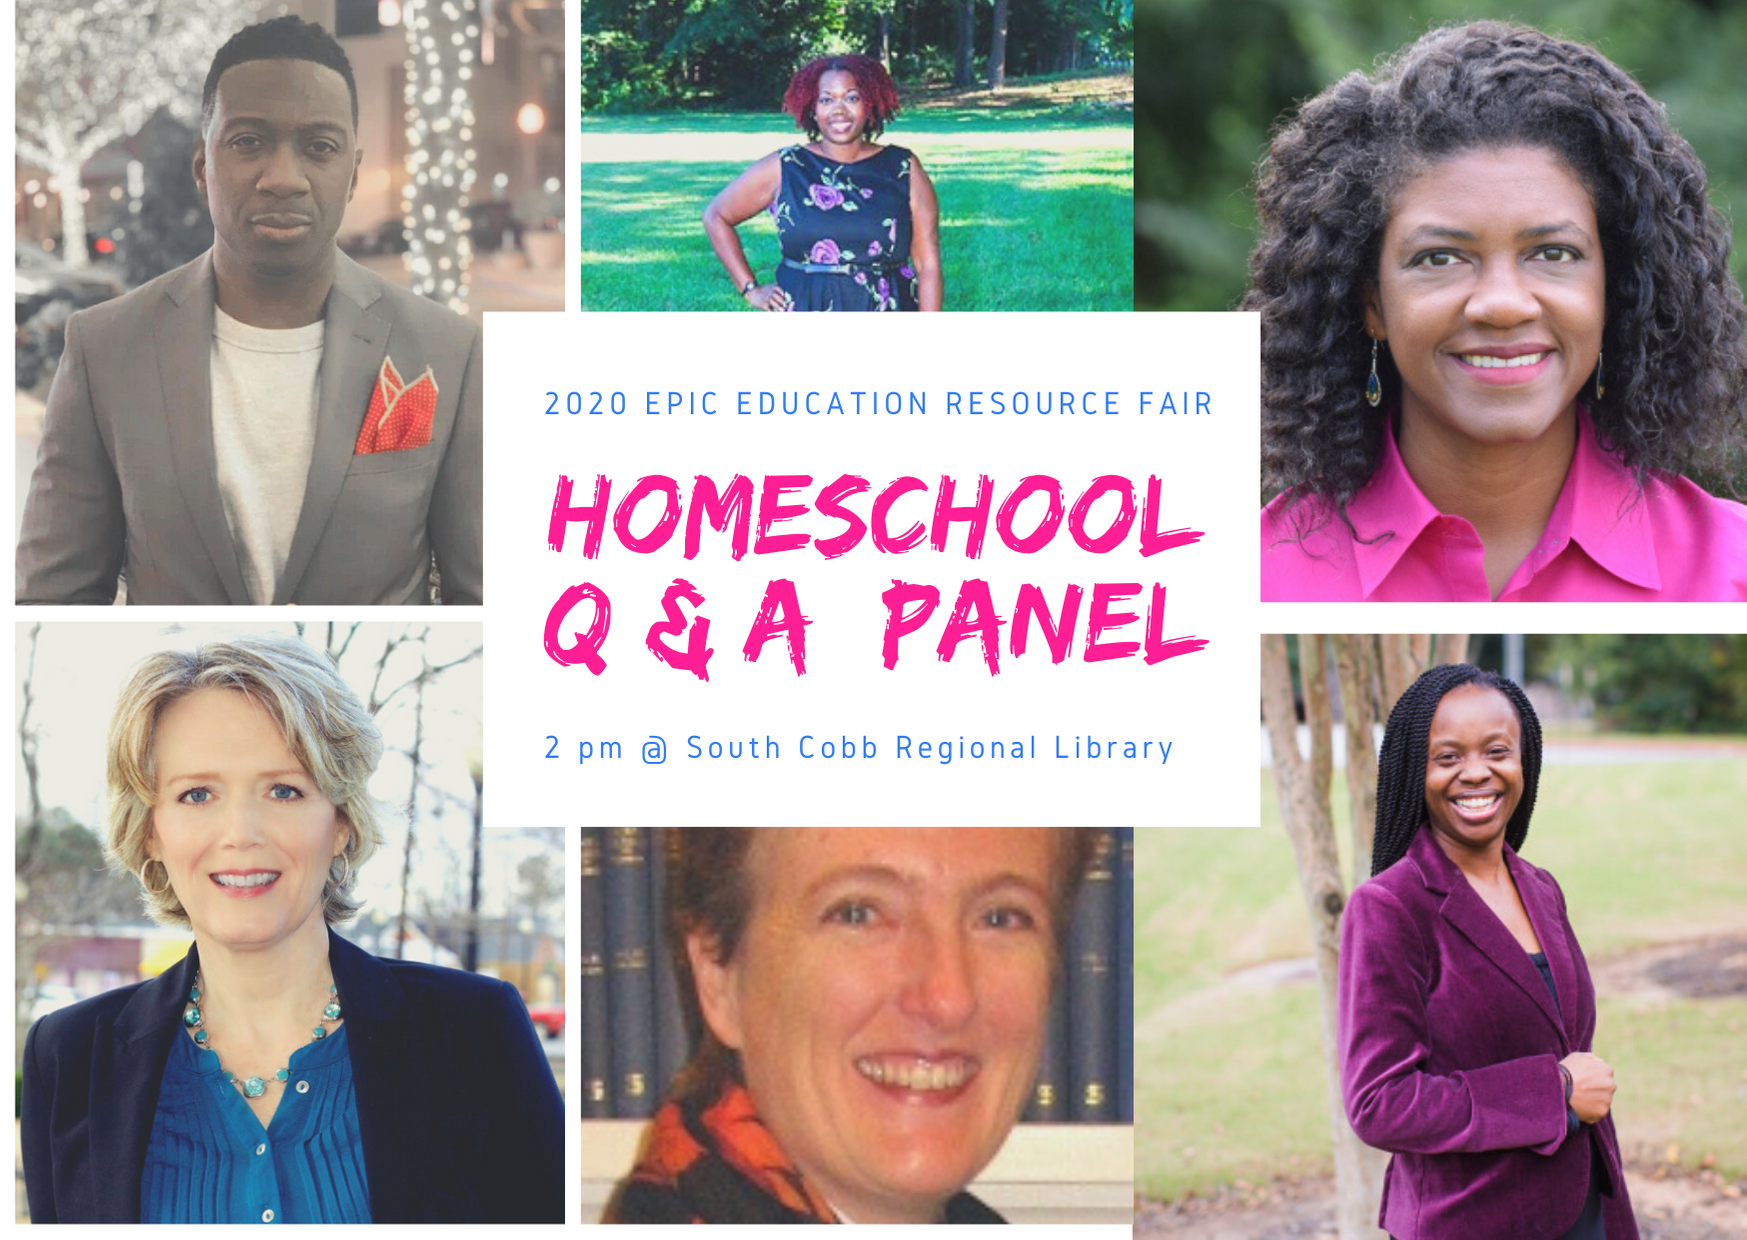 Homeschool Q & A Session